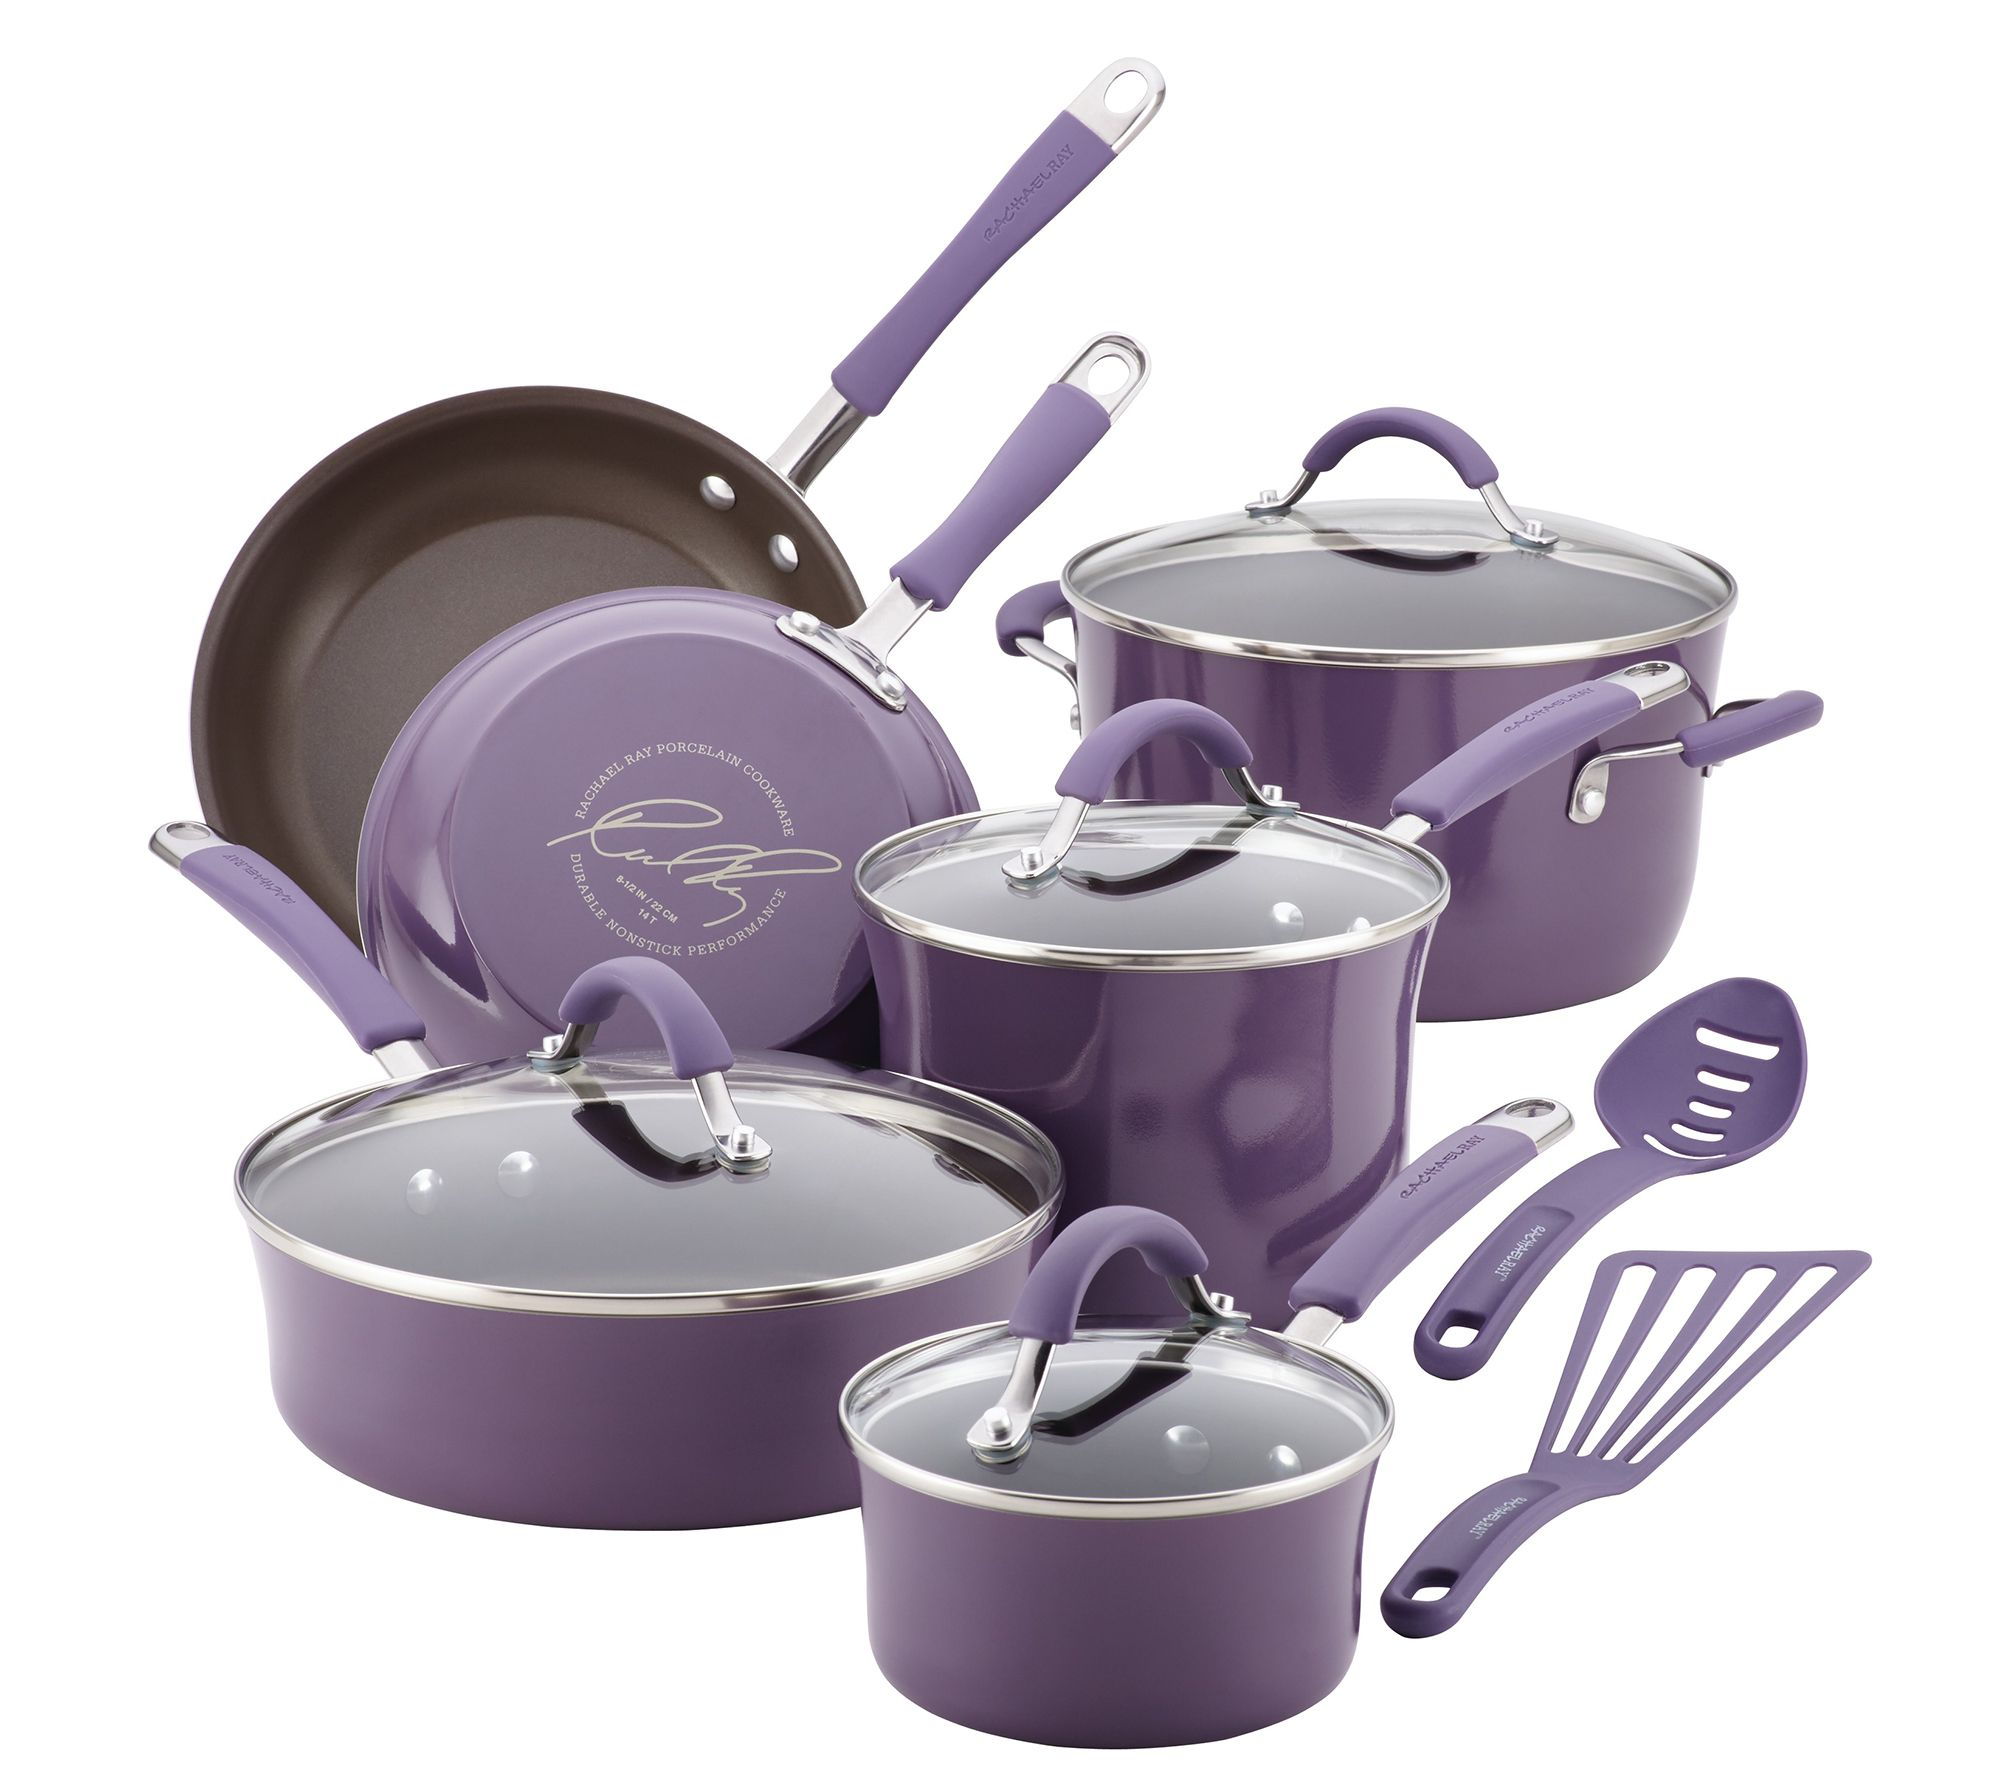 Rachael ray cucina hard enamel 12 piece cookware set page 1 qvc com